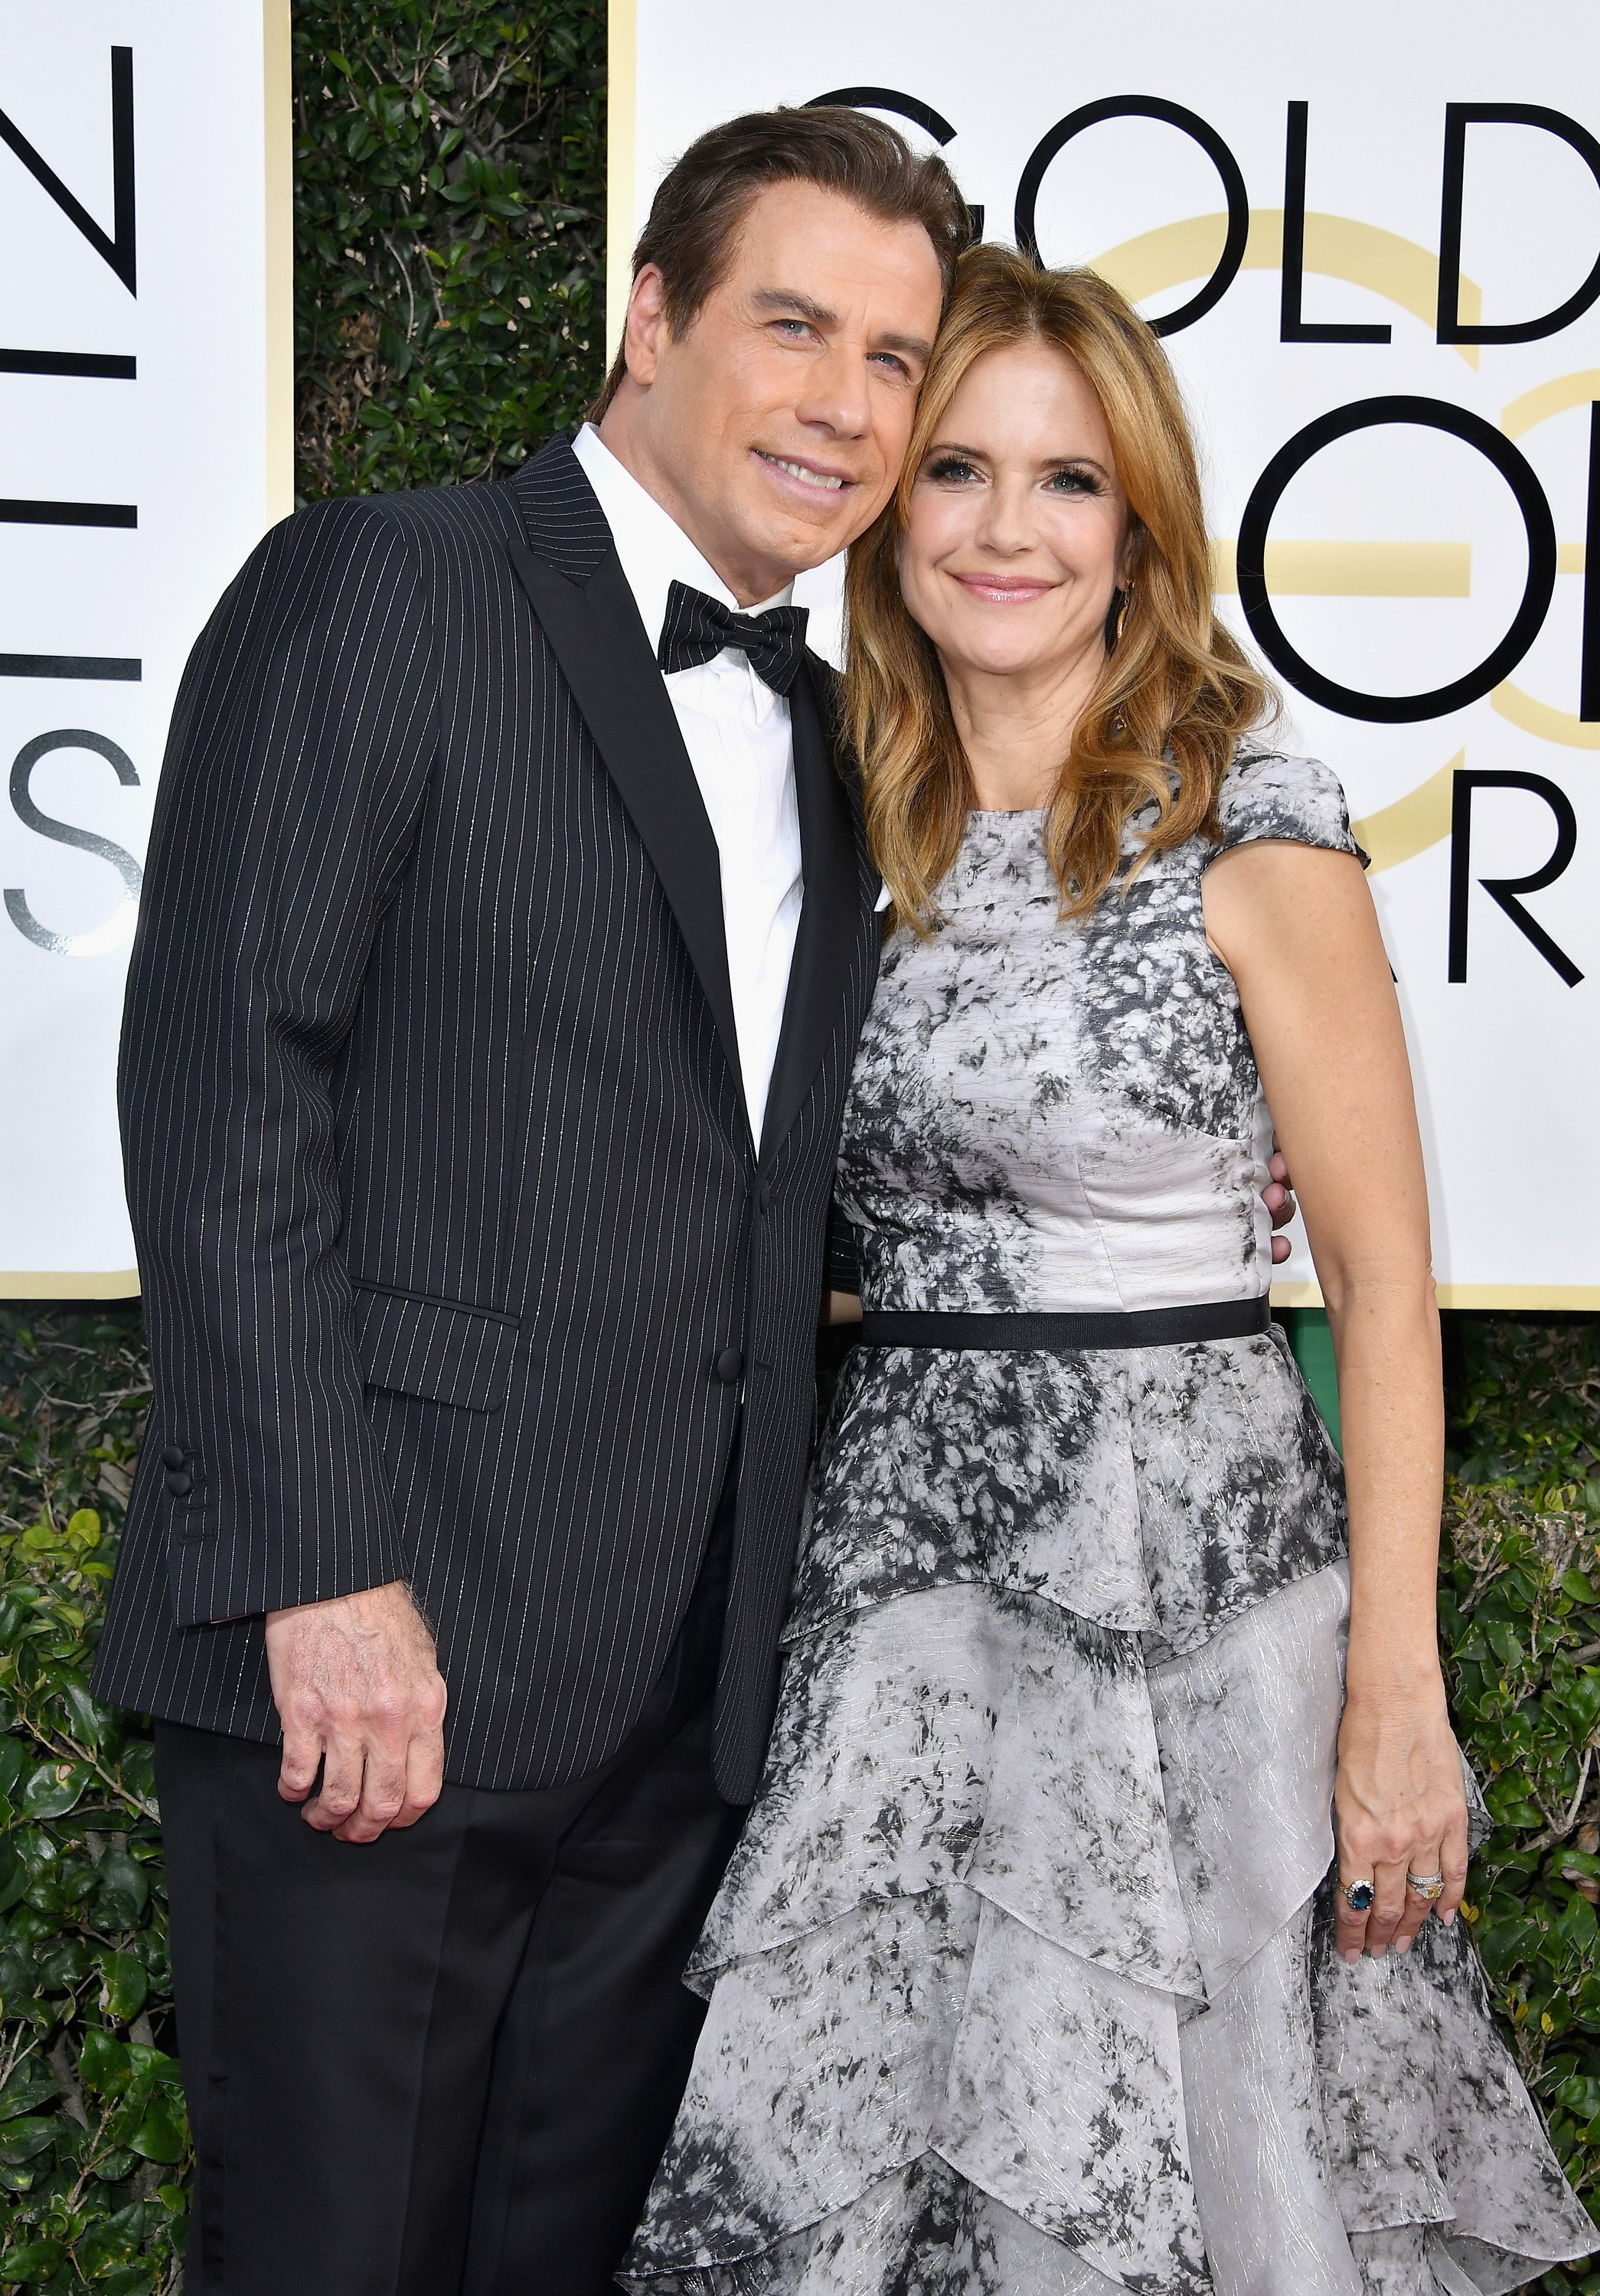 John Travolta and his late wife, Kelly Preston pictured together at the 74th Annual Golden Globe Awards at The Beverly Hilton Hotel, 2017, California. | Photo: Getty Images